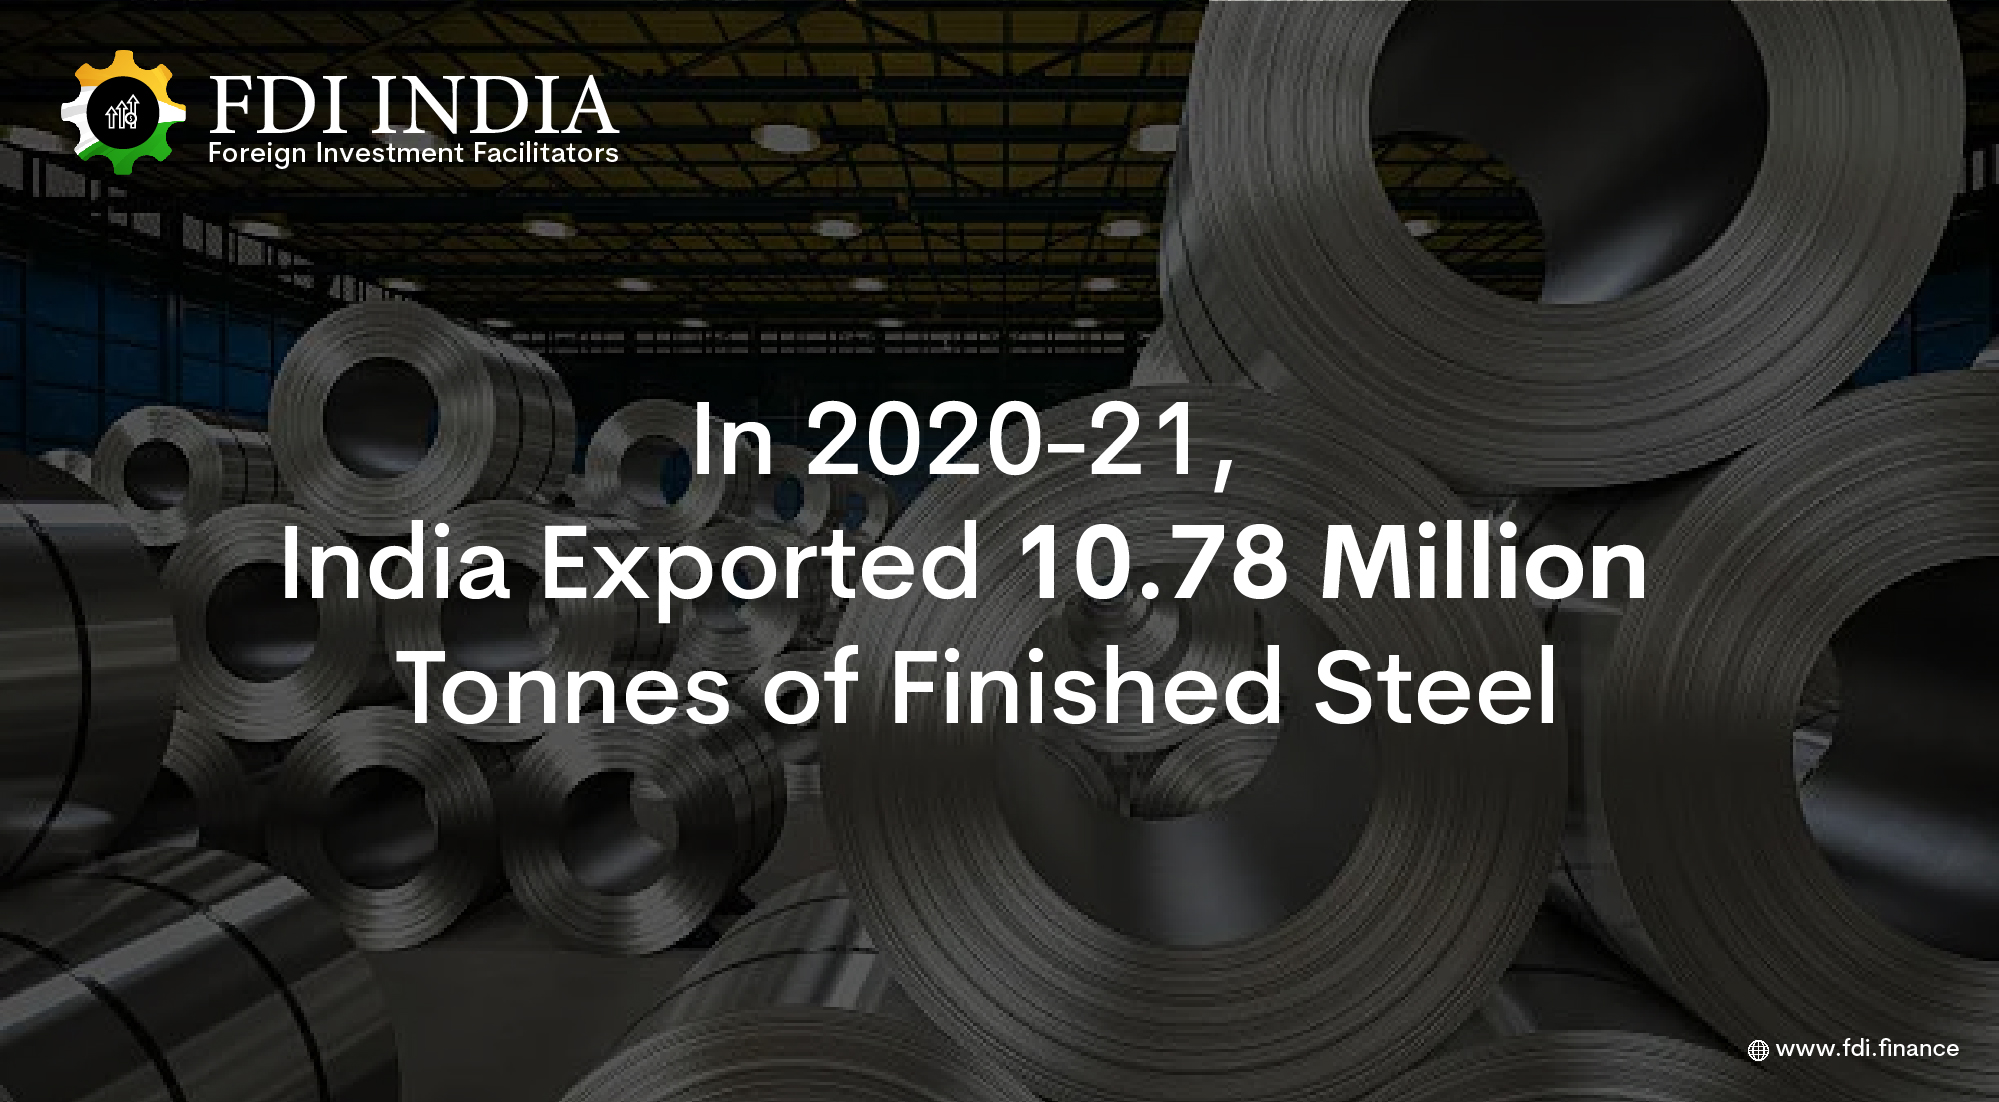 In 2020-21, India Exported 10.78 Million Tonnes of Finished Steel